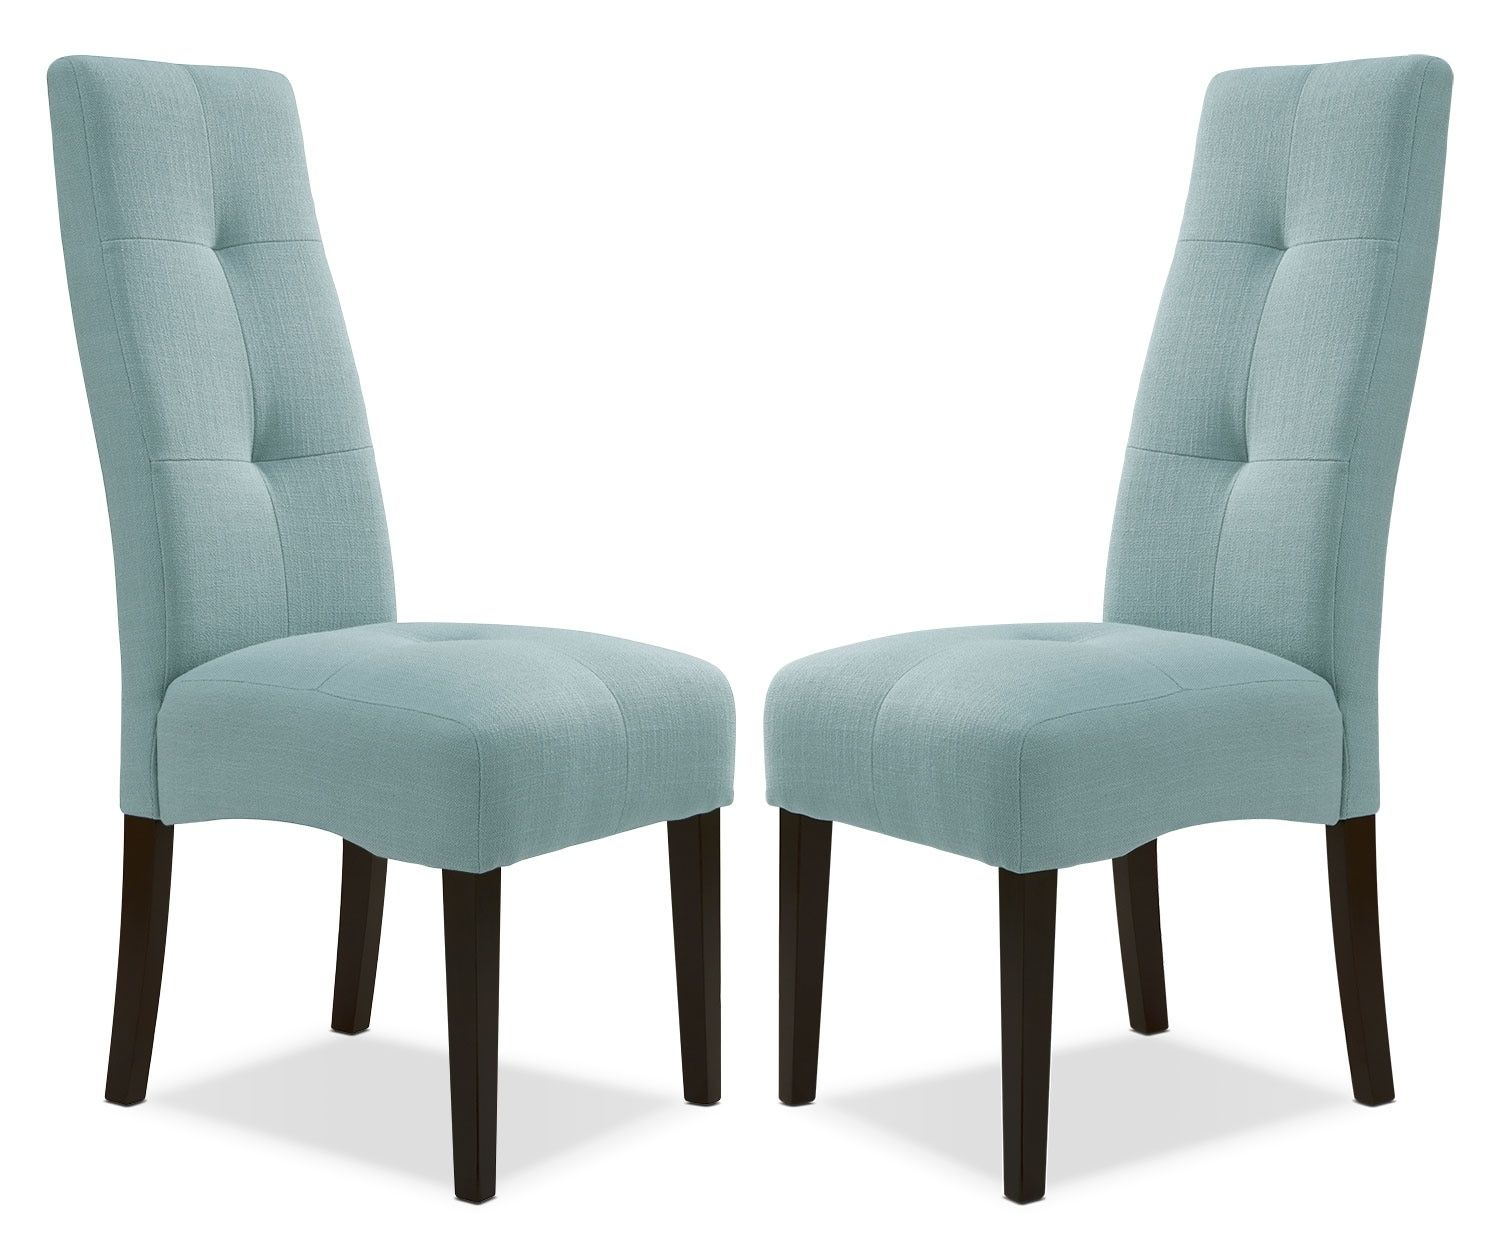 Dining room furniture abbotsly chairs set of 2 aqua